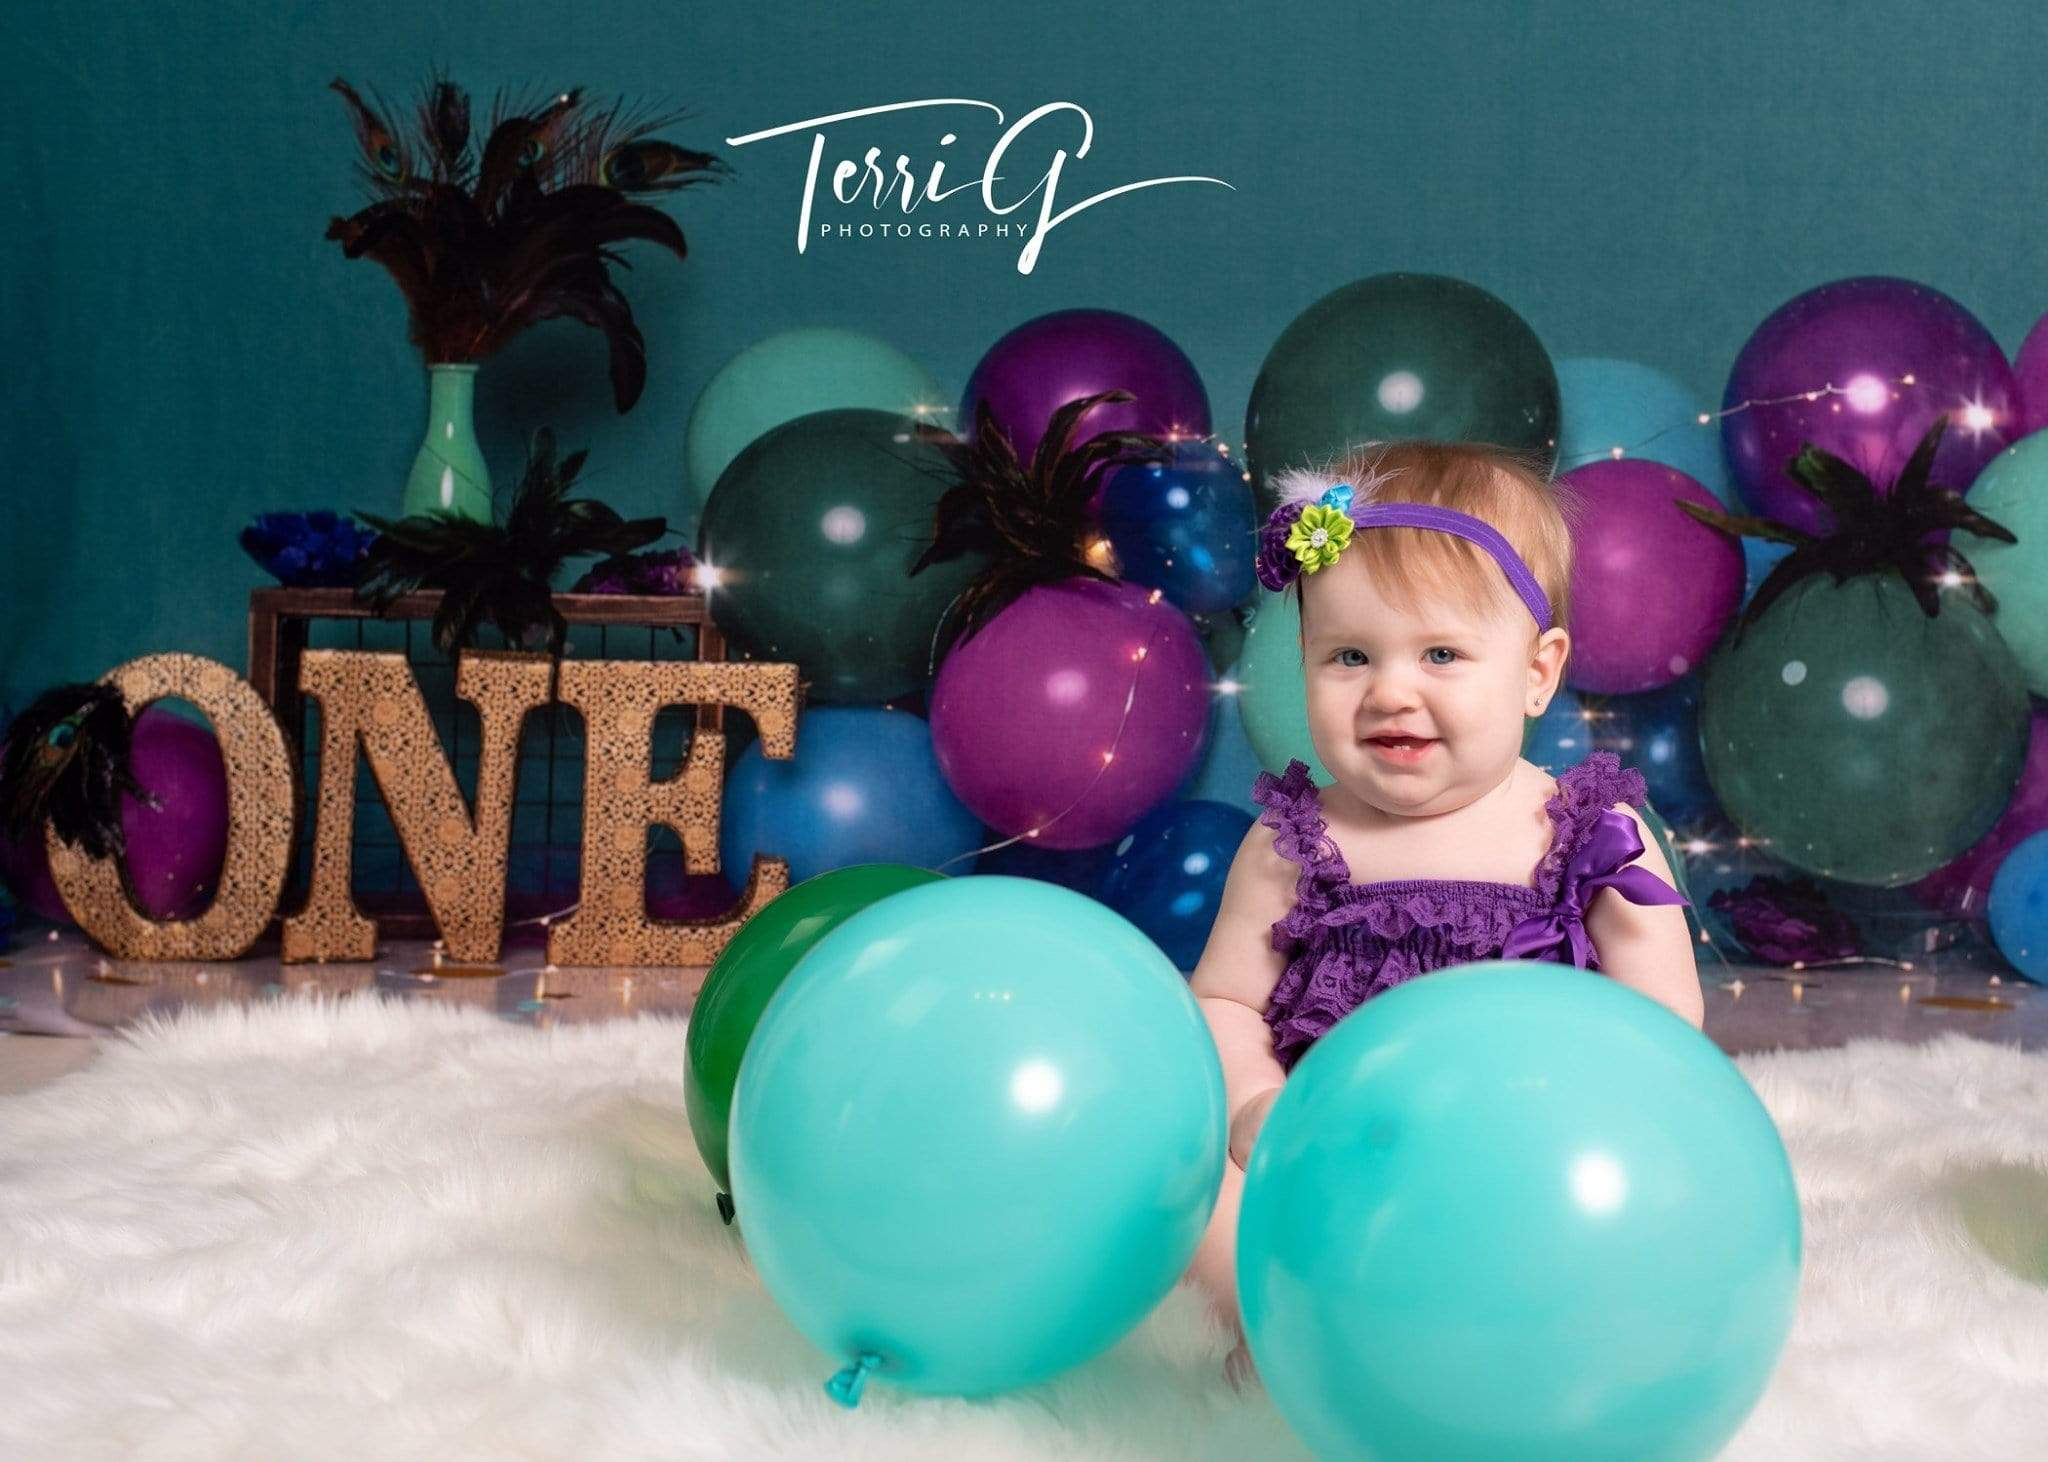 Load image into Gallery viewer, Katebackdrop£ºKate 1st Birthday with Balloons Backdrop for Photography Designed by Cassie Christiansen Photography